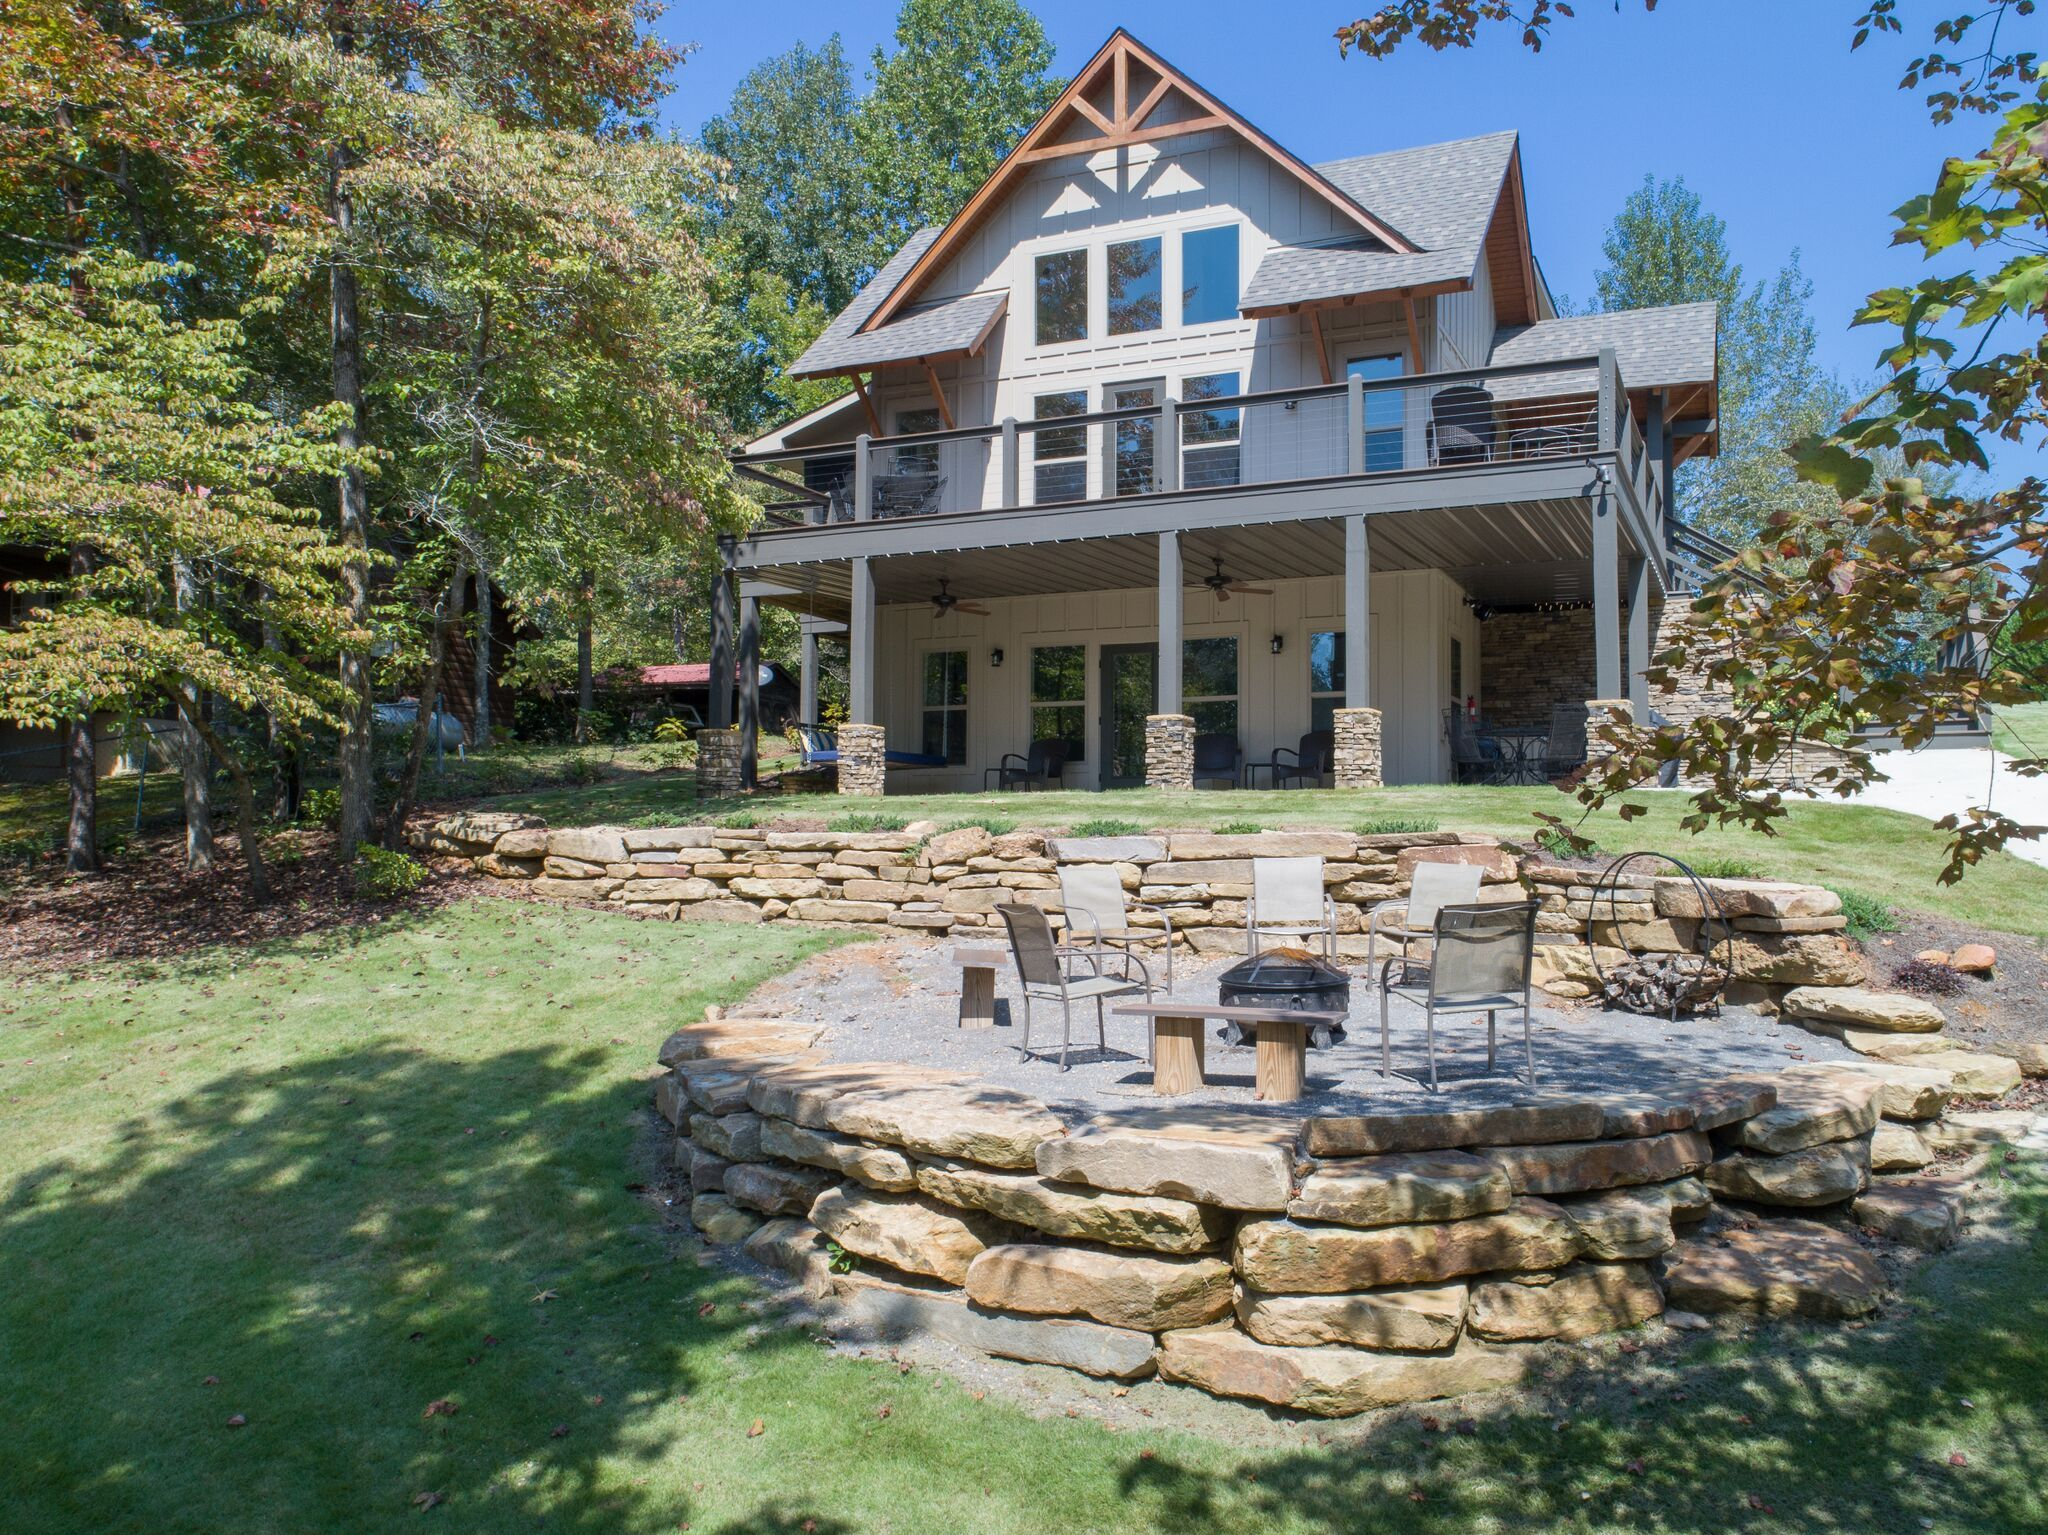 Beautifully crafted lake house with a large porch and a